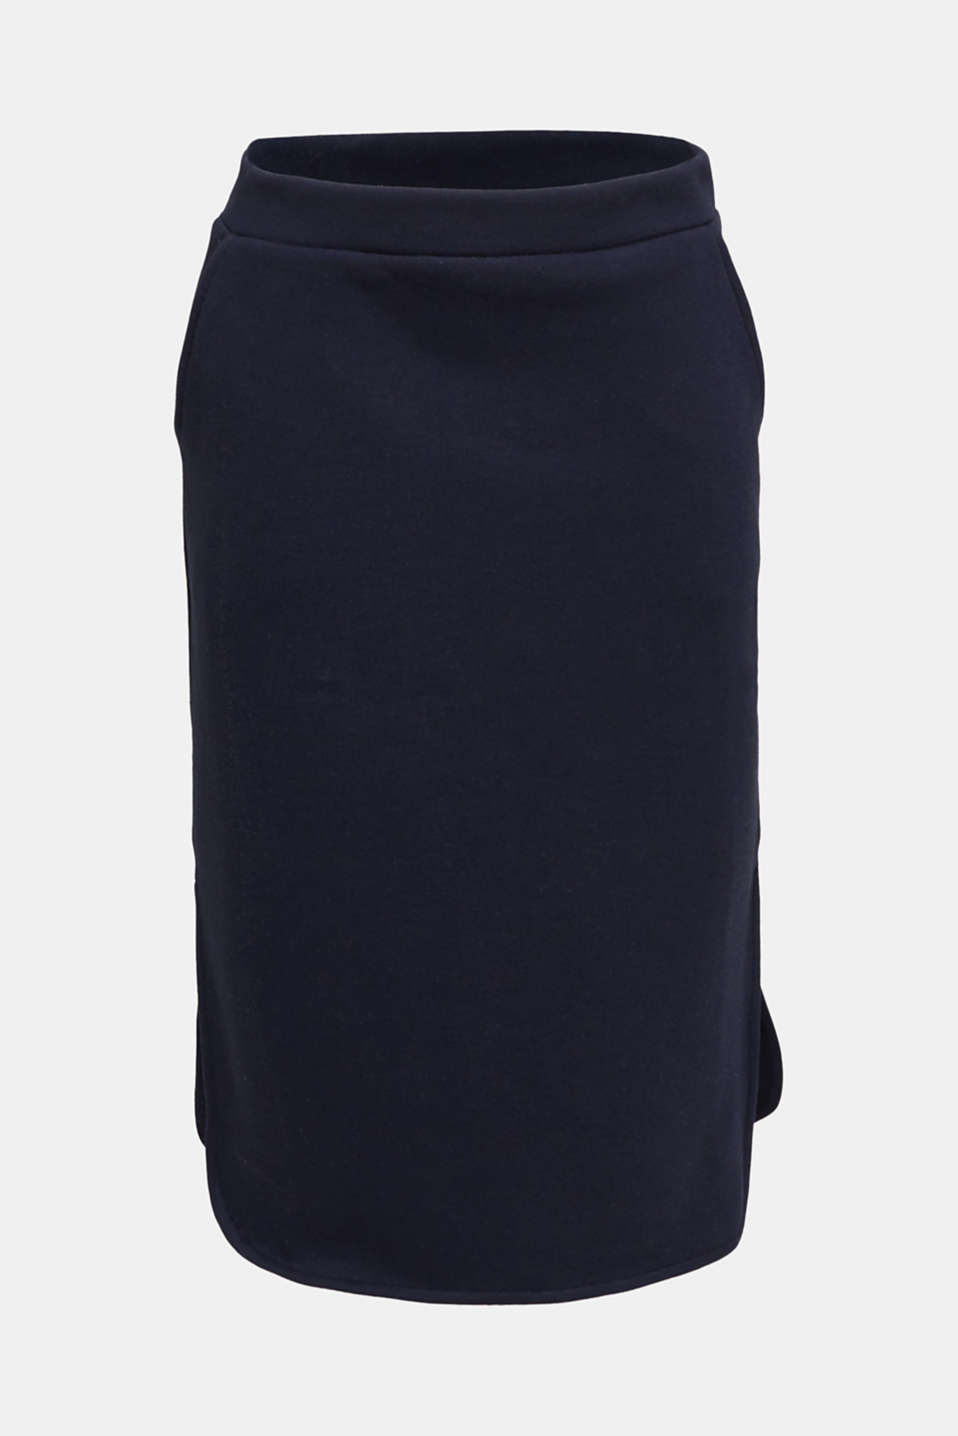 Pencil skirt made of sweatshirt fabric, NAVY, detail image number 7